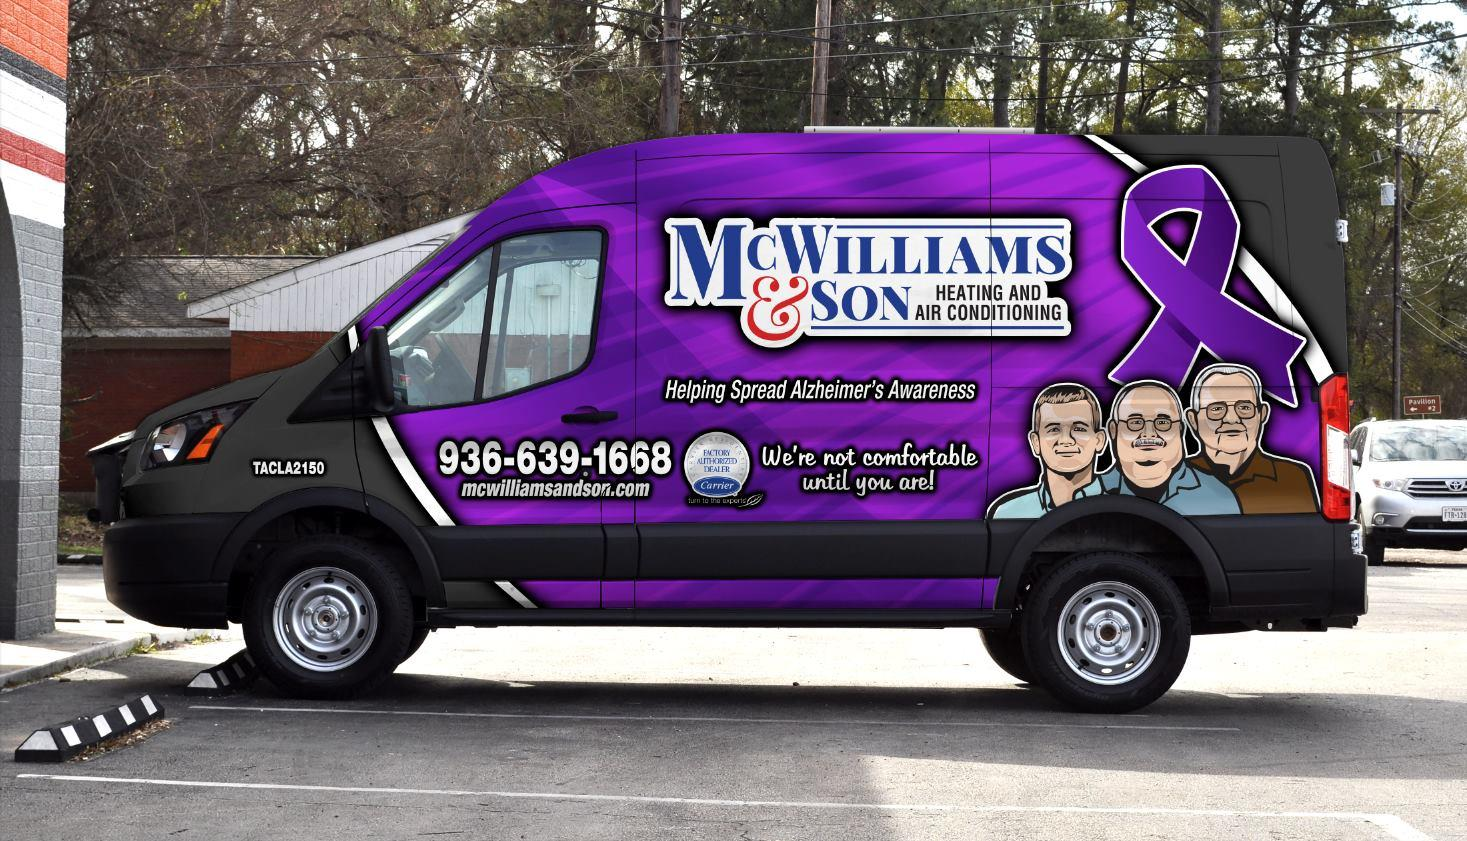 McWilliams & Son Heating and Air Conditioning image 5